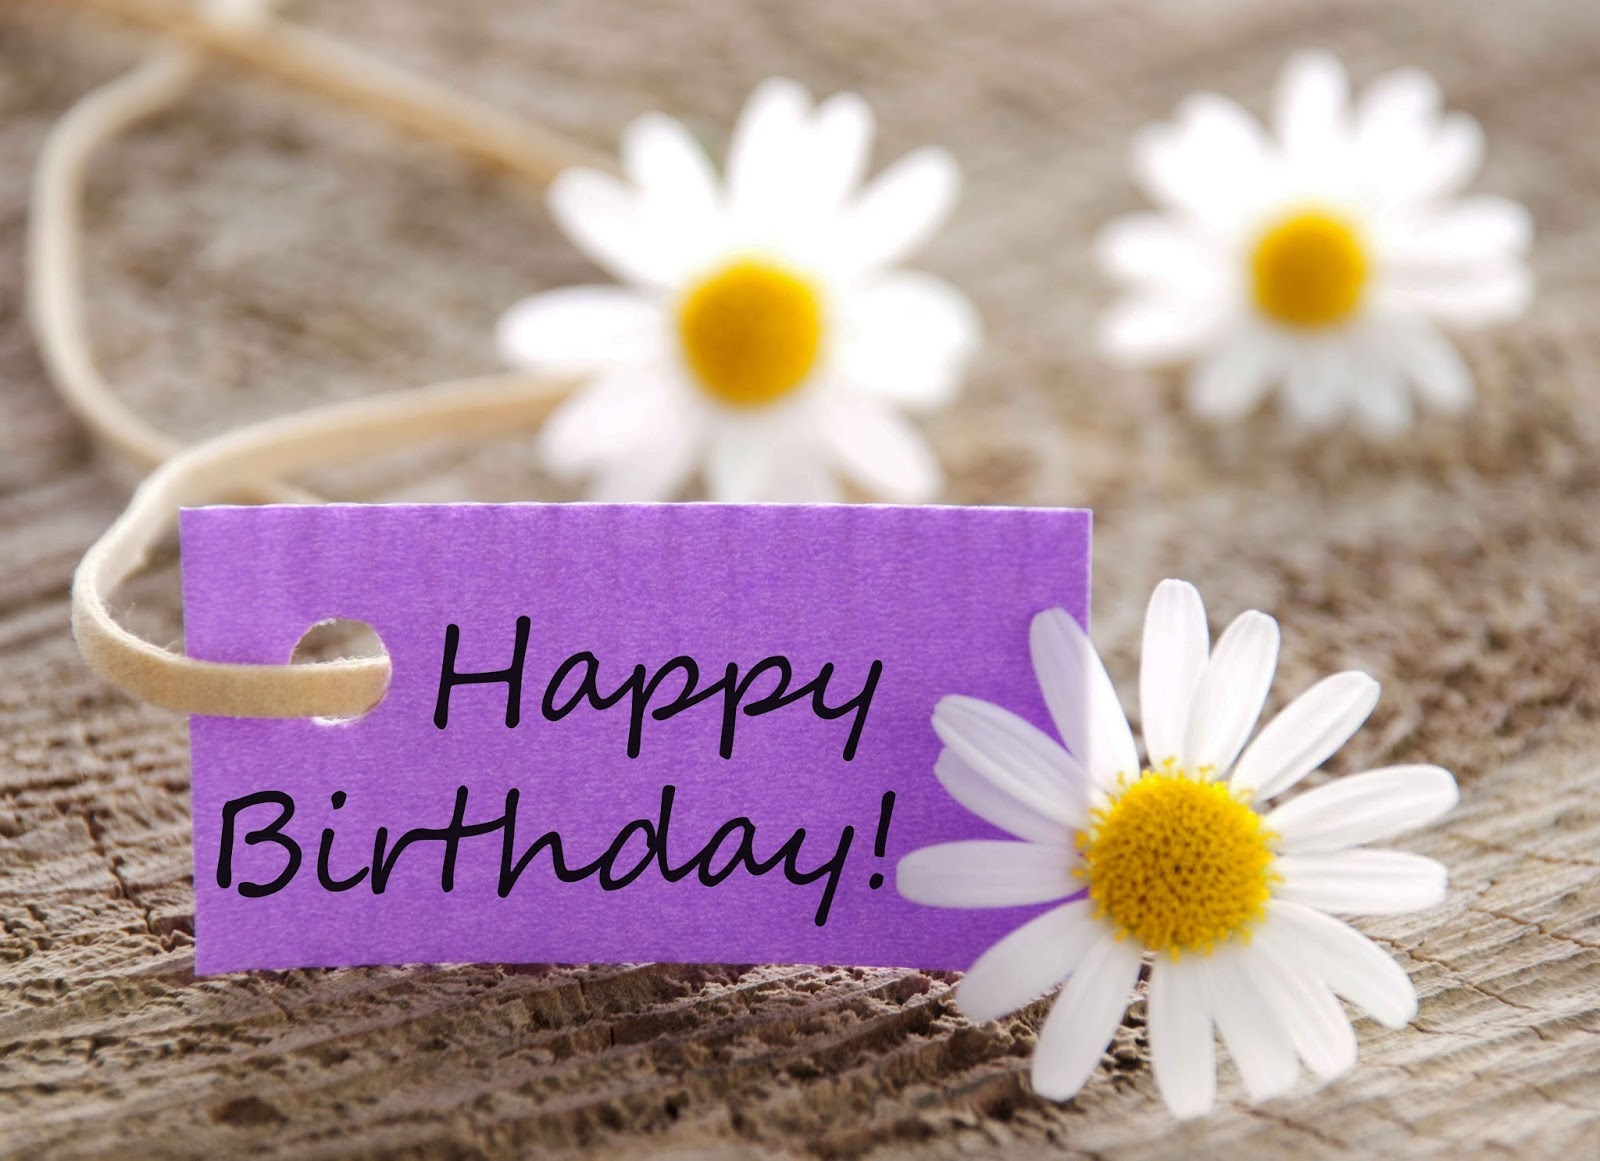 Best Happy Birthday Messages – BestMessage